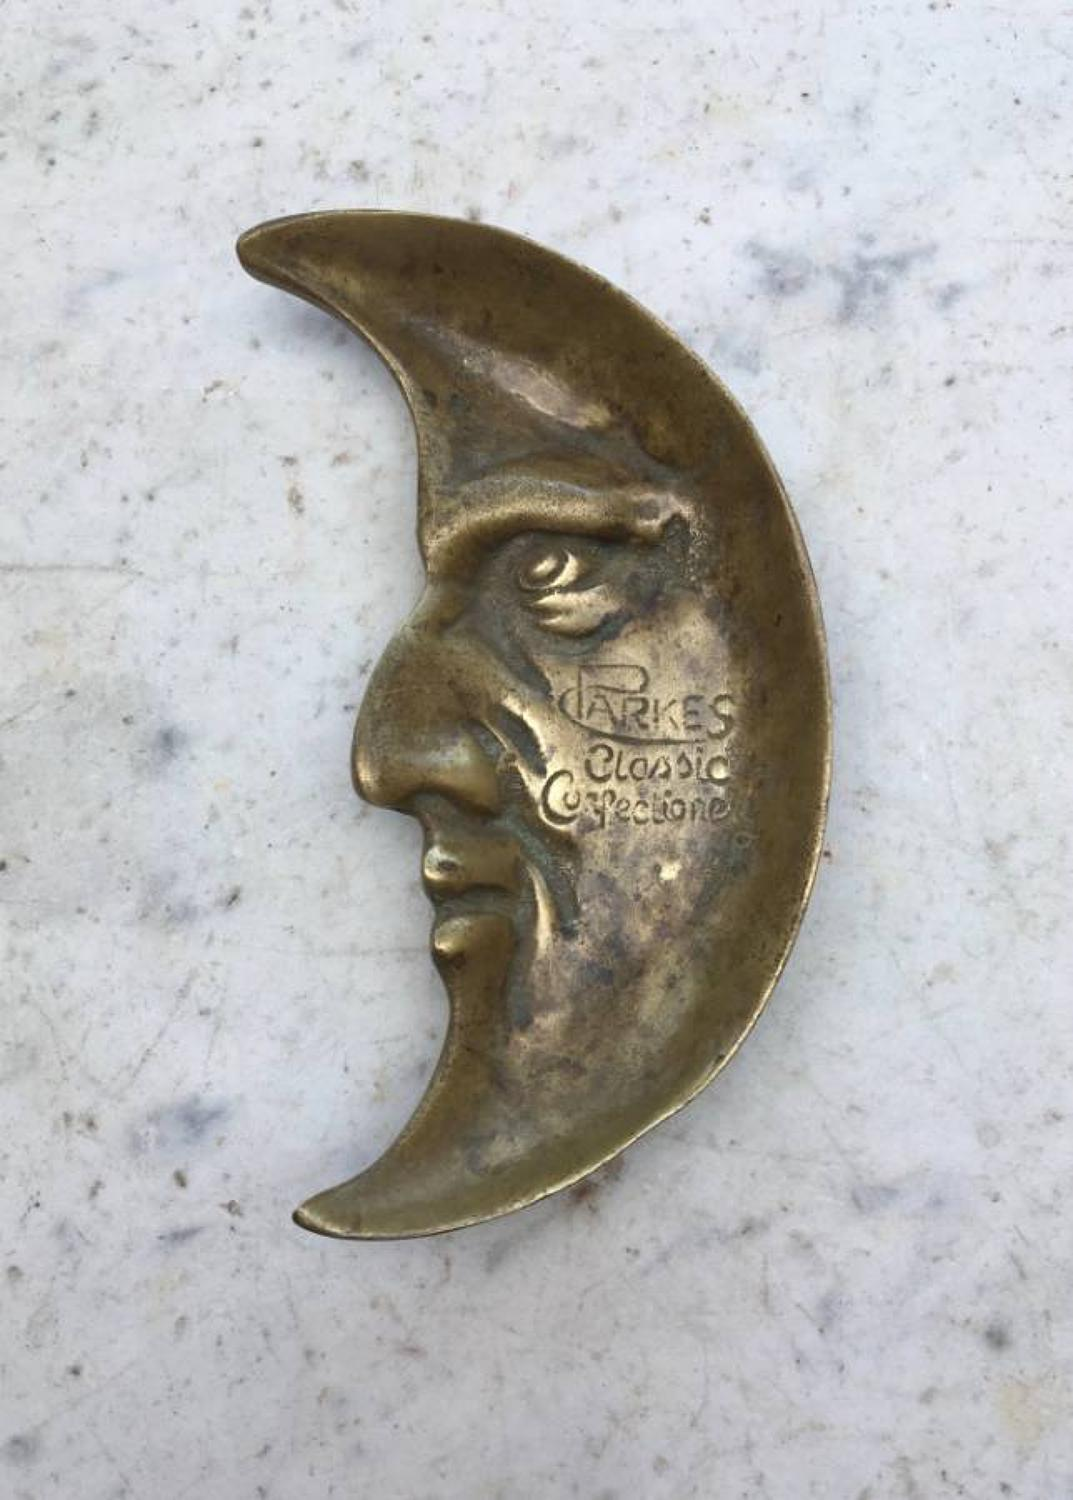 Edwardian Shops Brass Advertising Man in the Moon Change Tray - Parkes